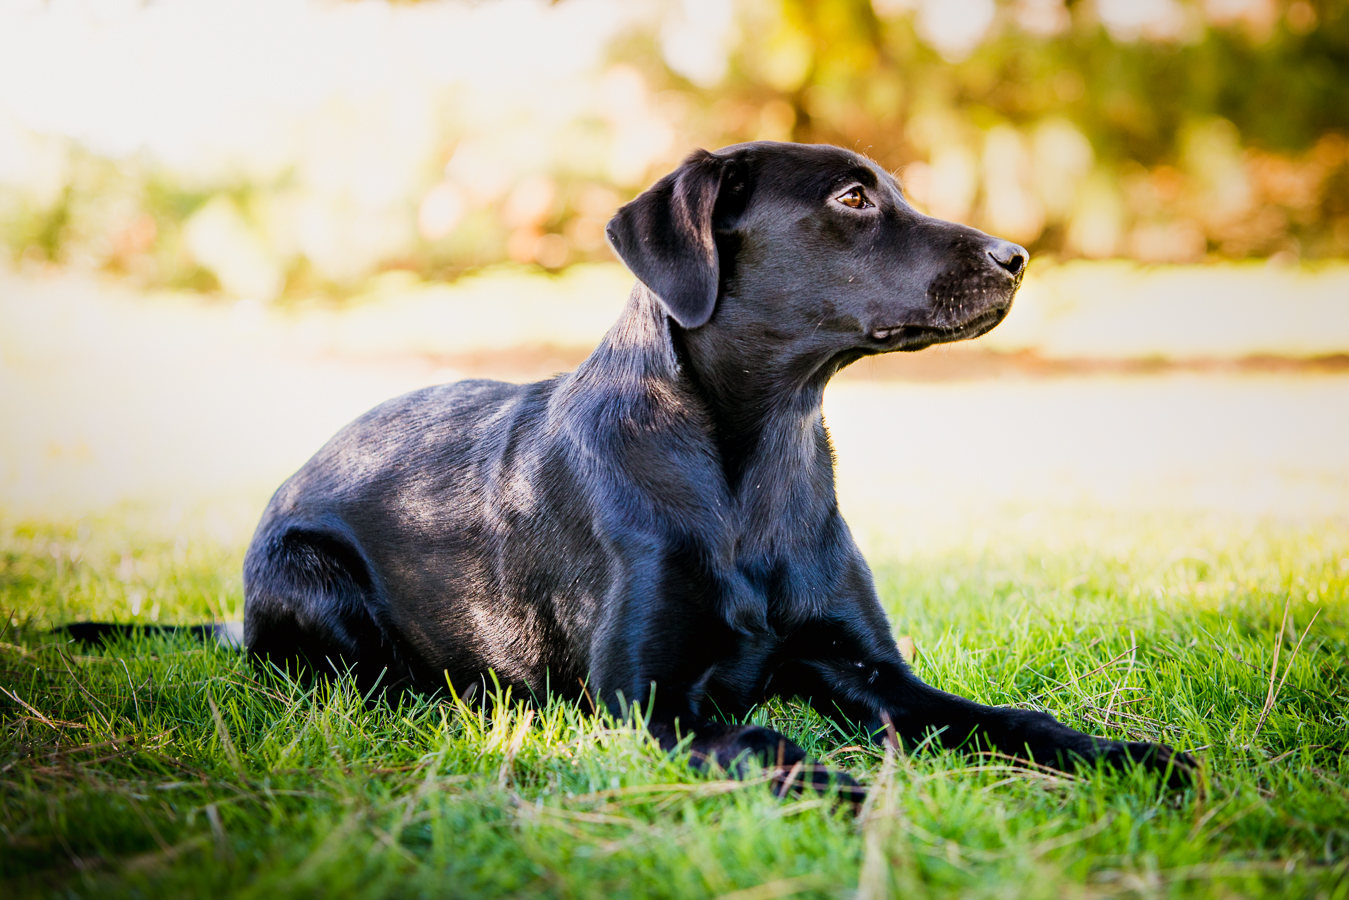 Helen Duffy & Katie - I would highly recommend Simon, he was full of brilliant ideas and captured some beautiful shots of my puppy.Google review - 5/5